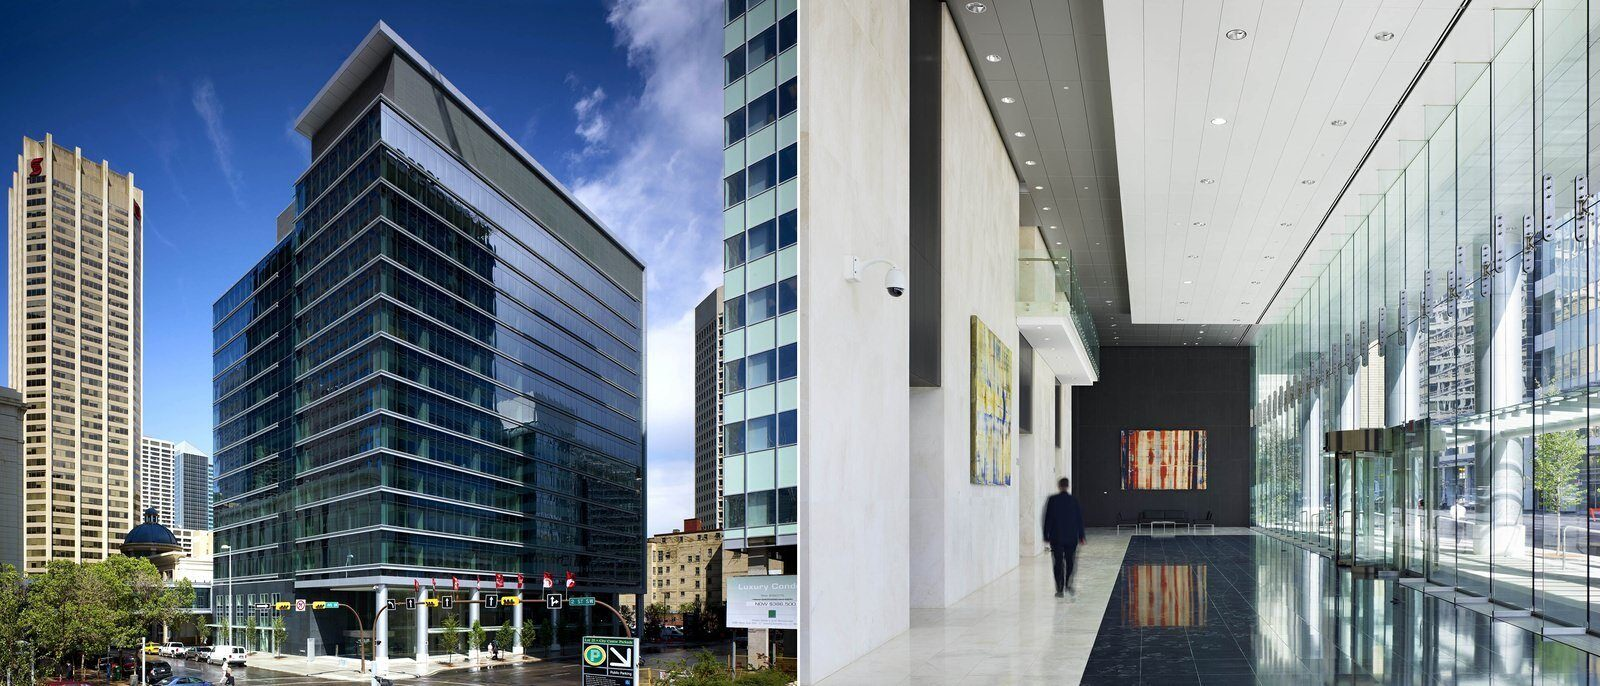 Two photos: one is an exterior of the building, the other is inside the lobby.